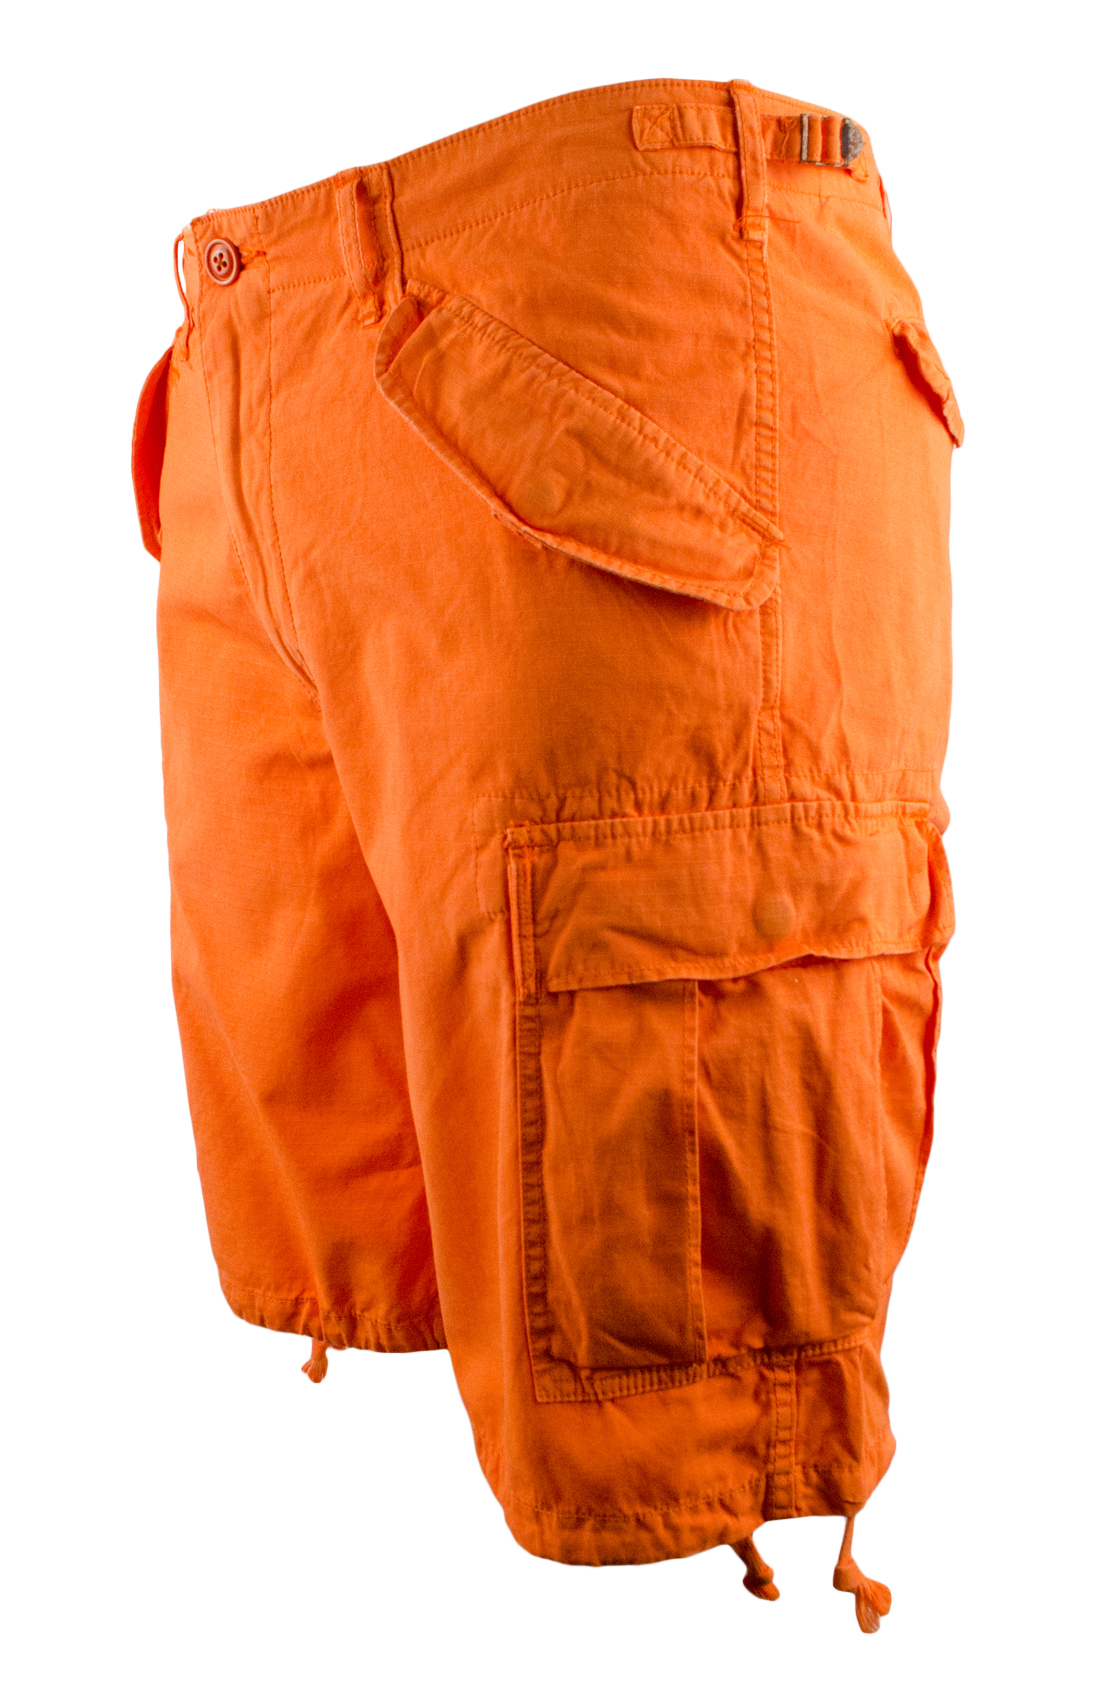 Sears has big & tall men's shorts. Find big & tall shorts from the brands you love today at Sears.